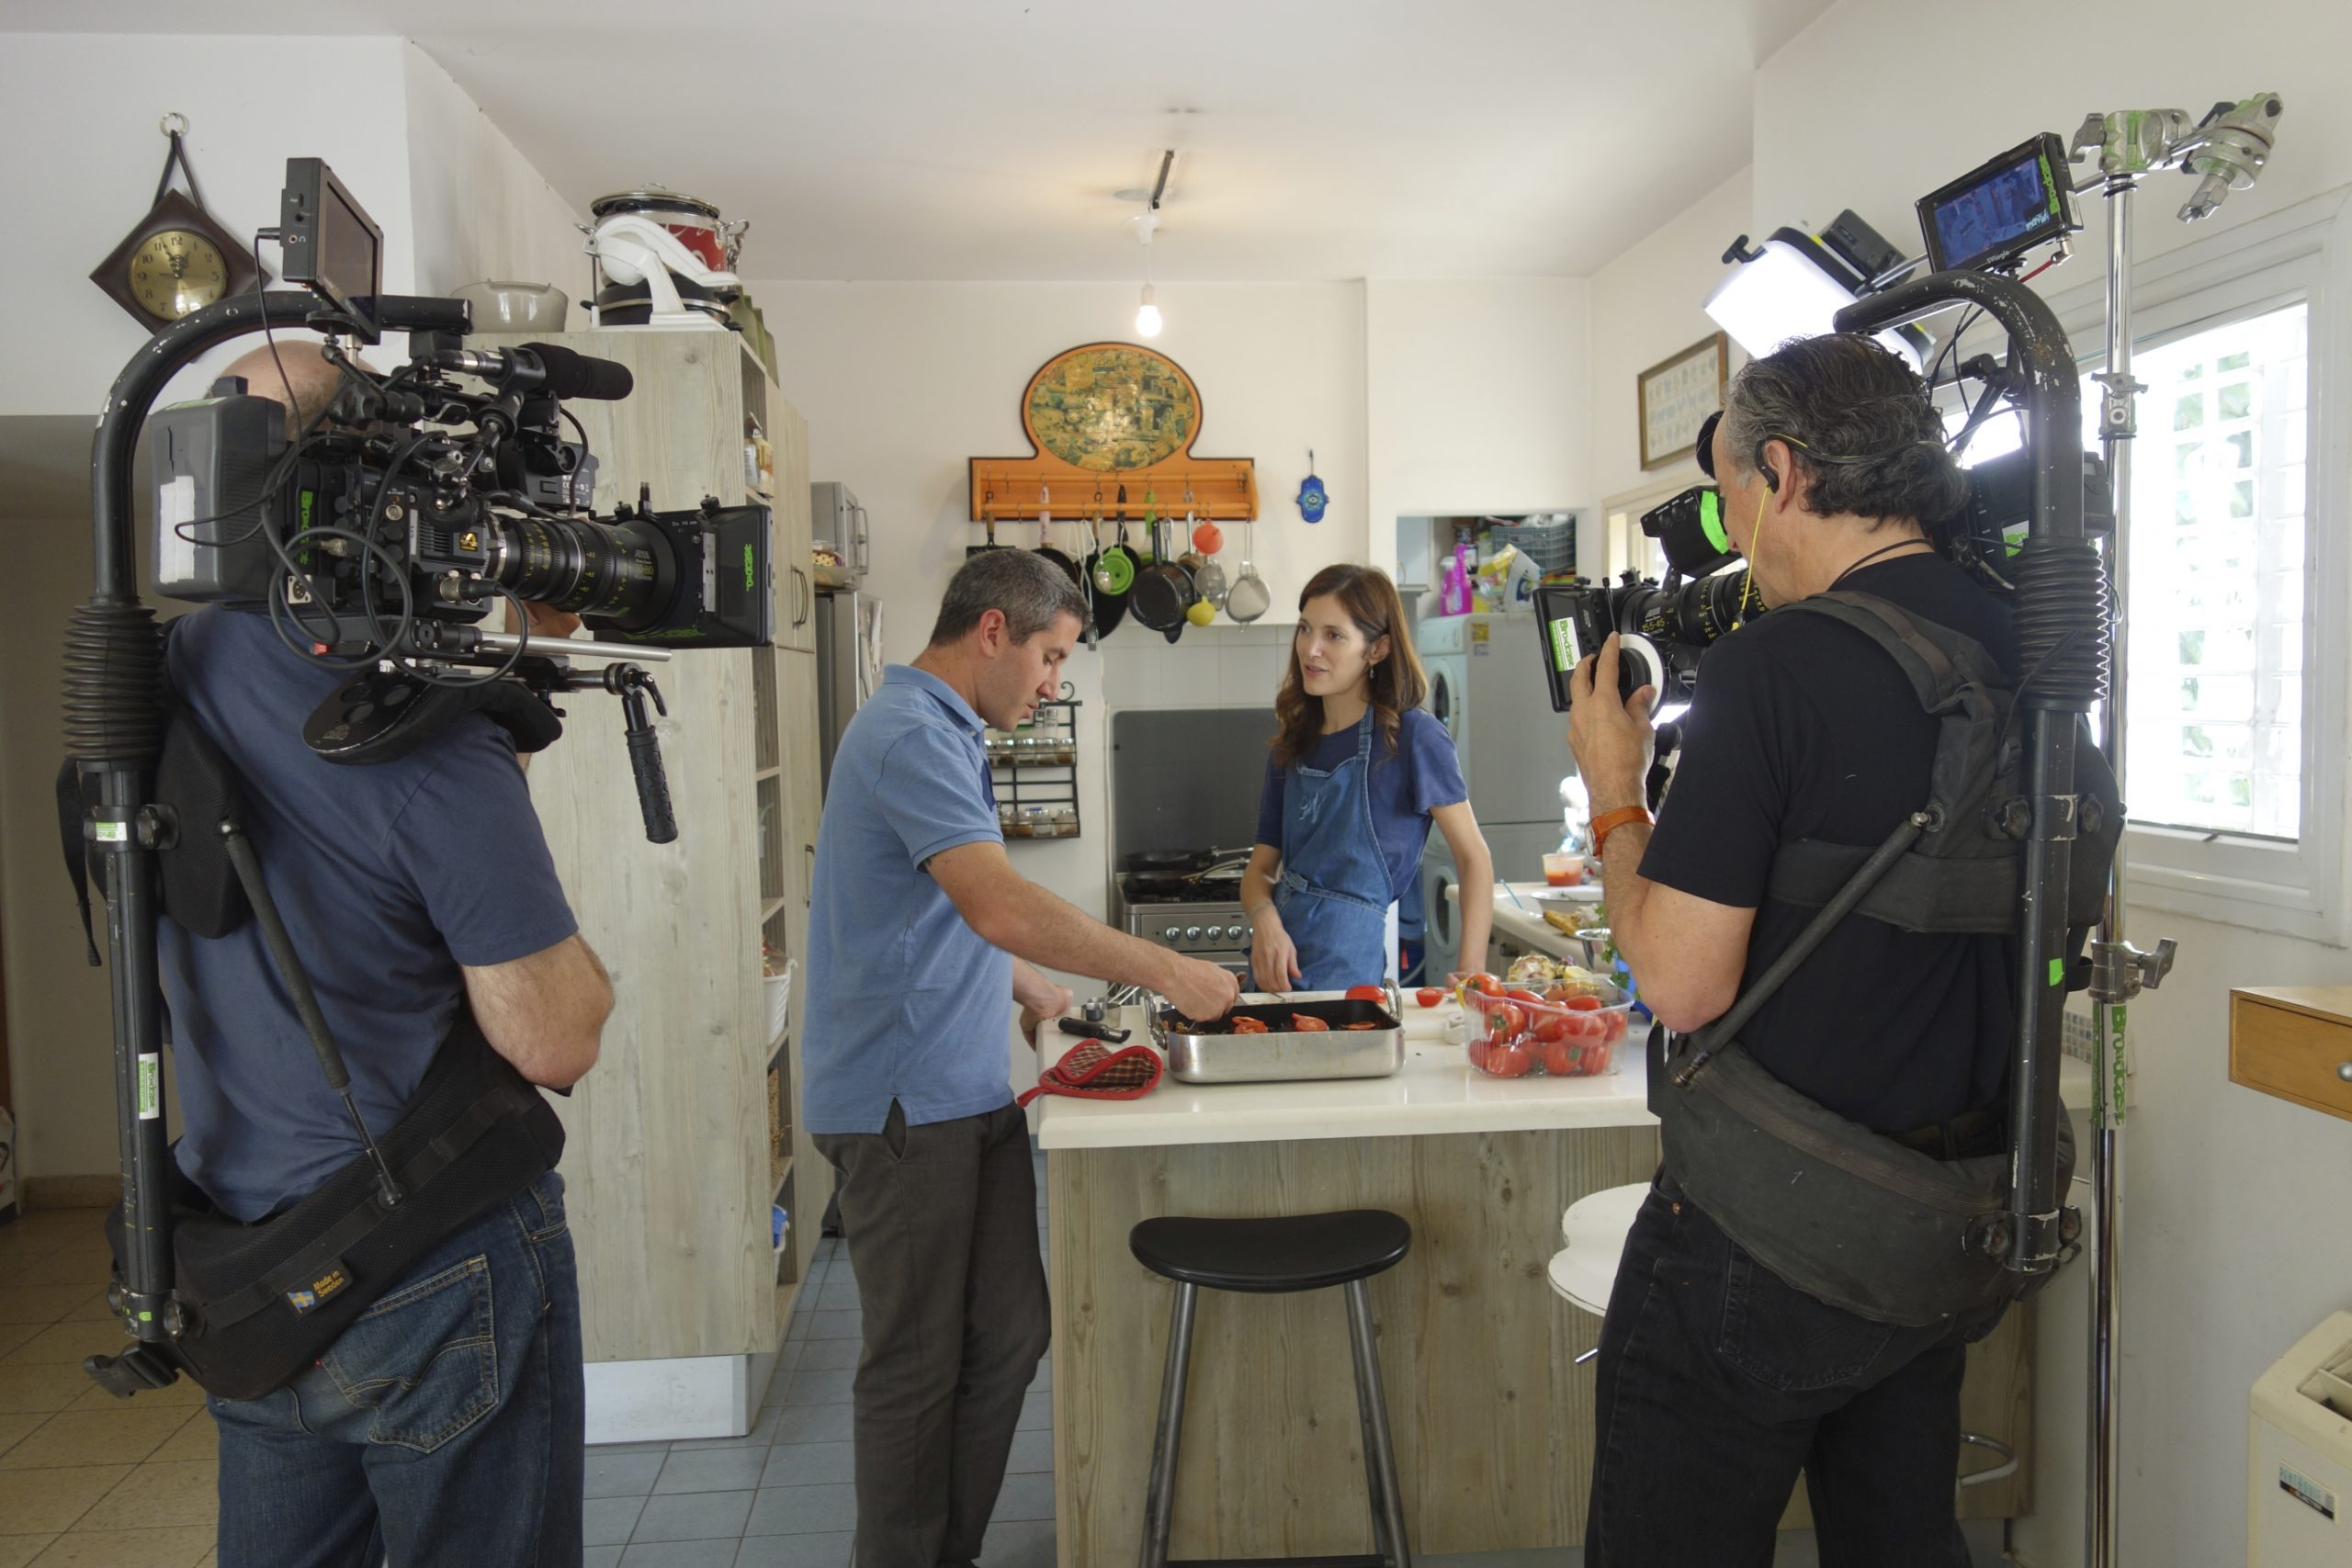 Director/cinematographer Roger Sherman and cinematographer Anthony Savini on location with chef Michael Solomonov and journalist Ruthie Russo in her kitchen in Tel Aviv